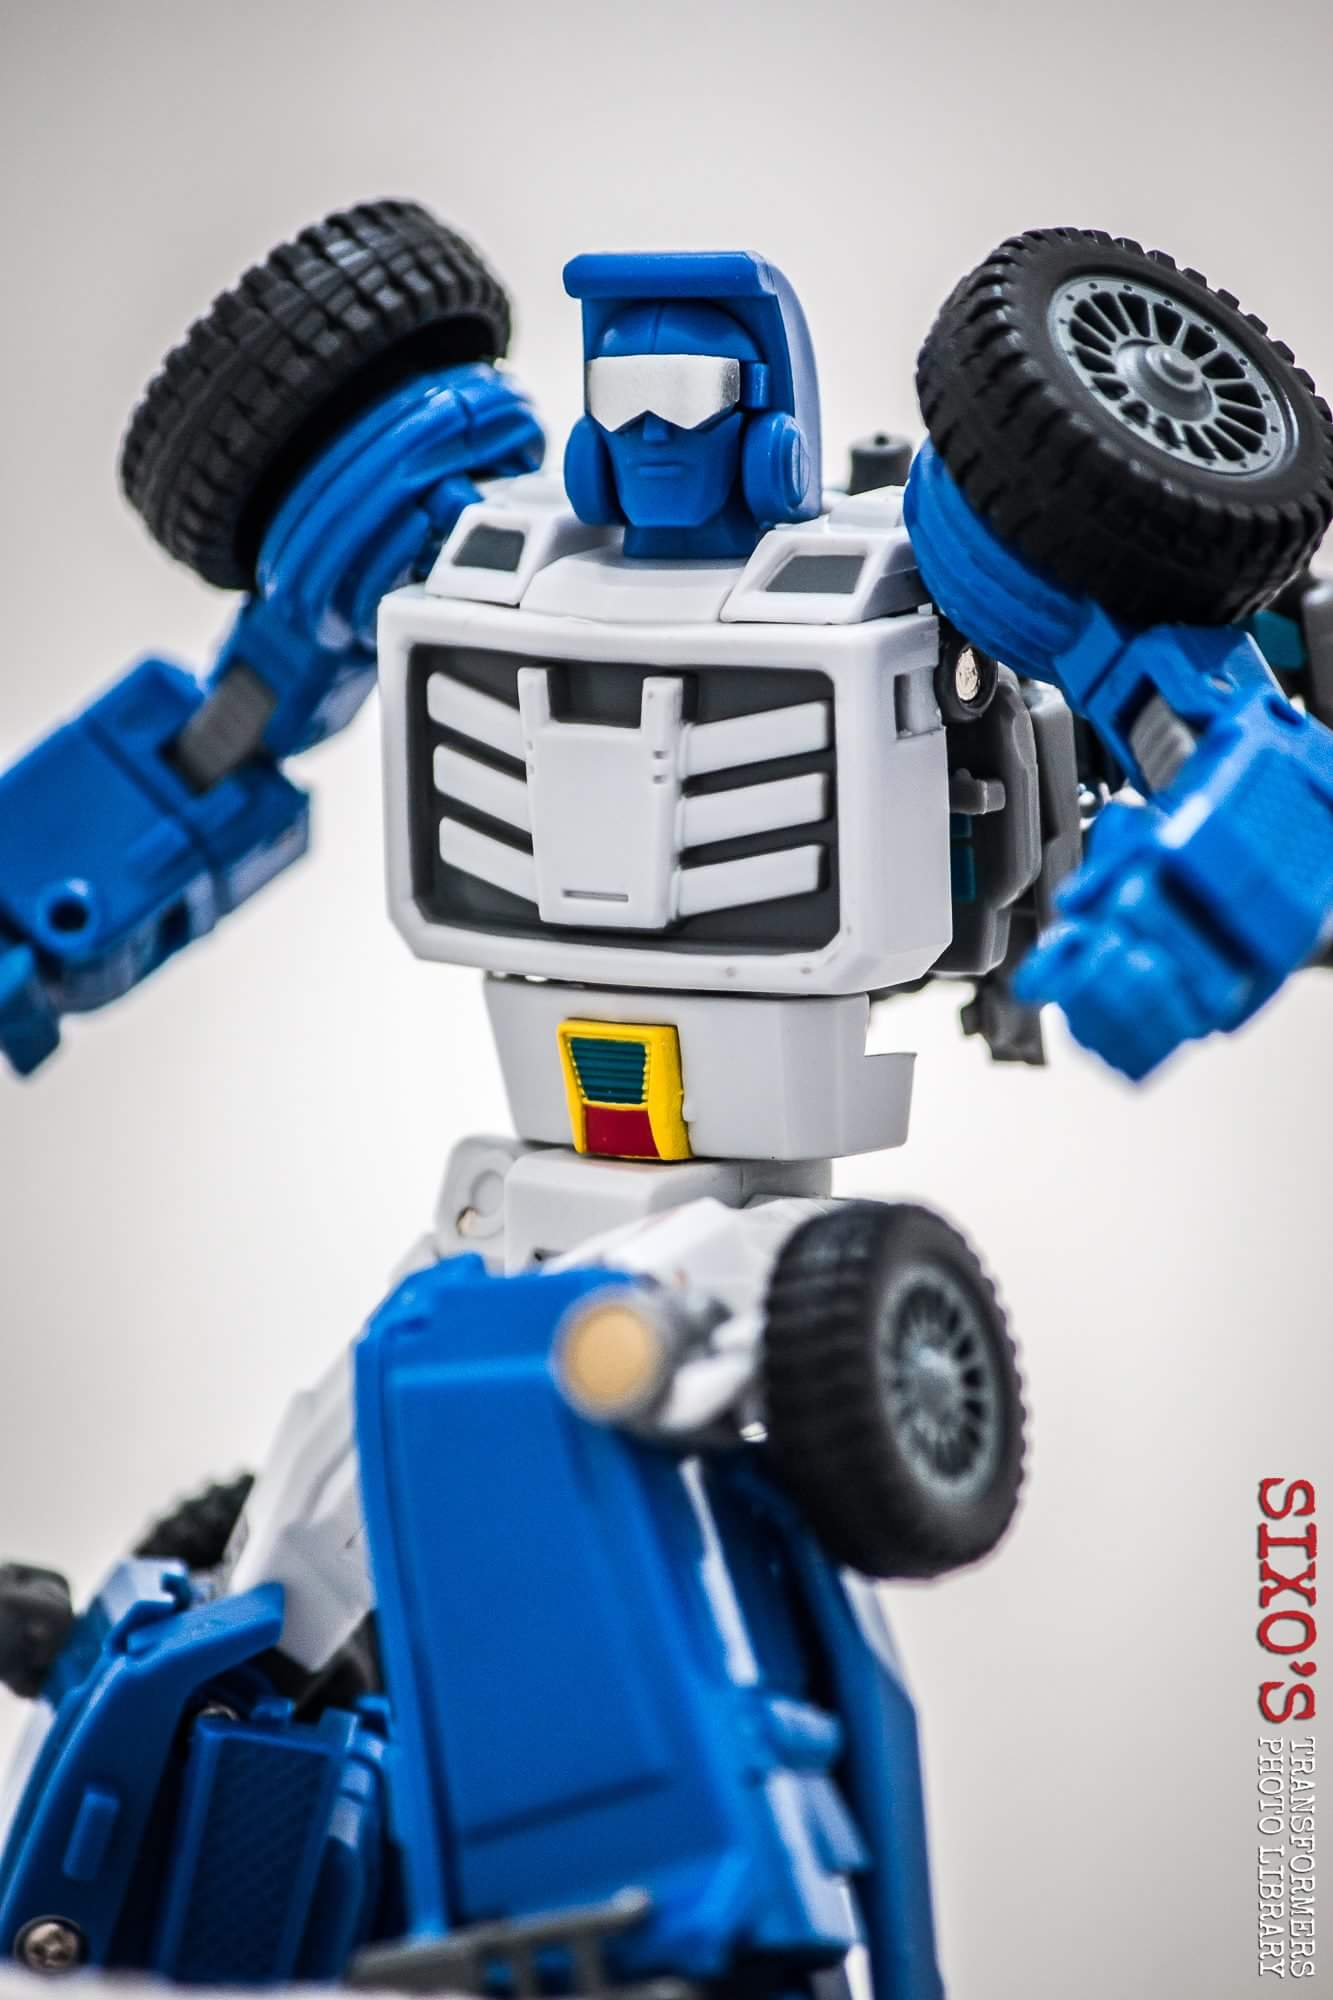 [X-Transbots] Produit Tiers - Minibots MP - Gamme MM - Page 6 TDhZSQLW